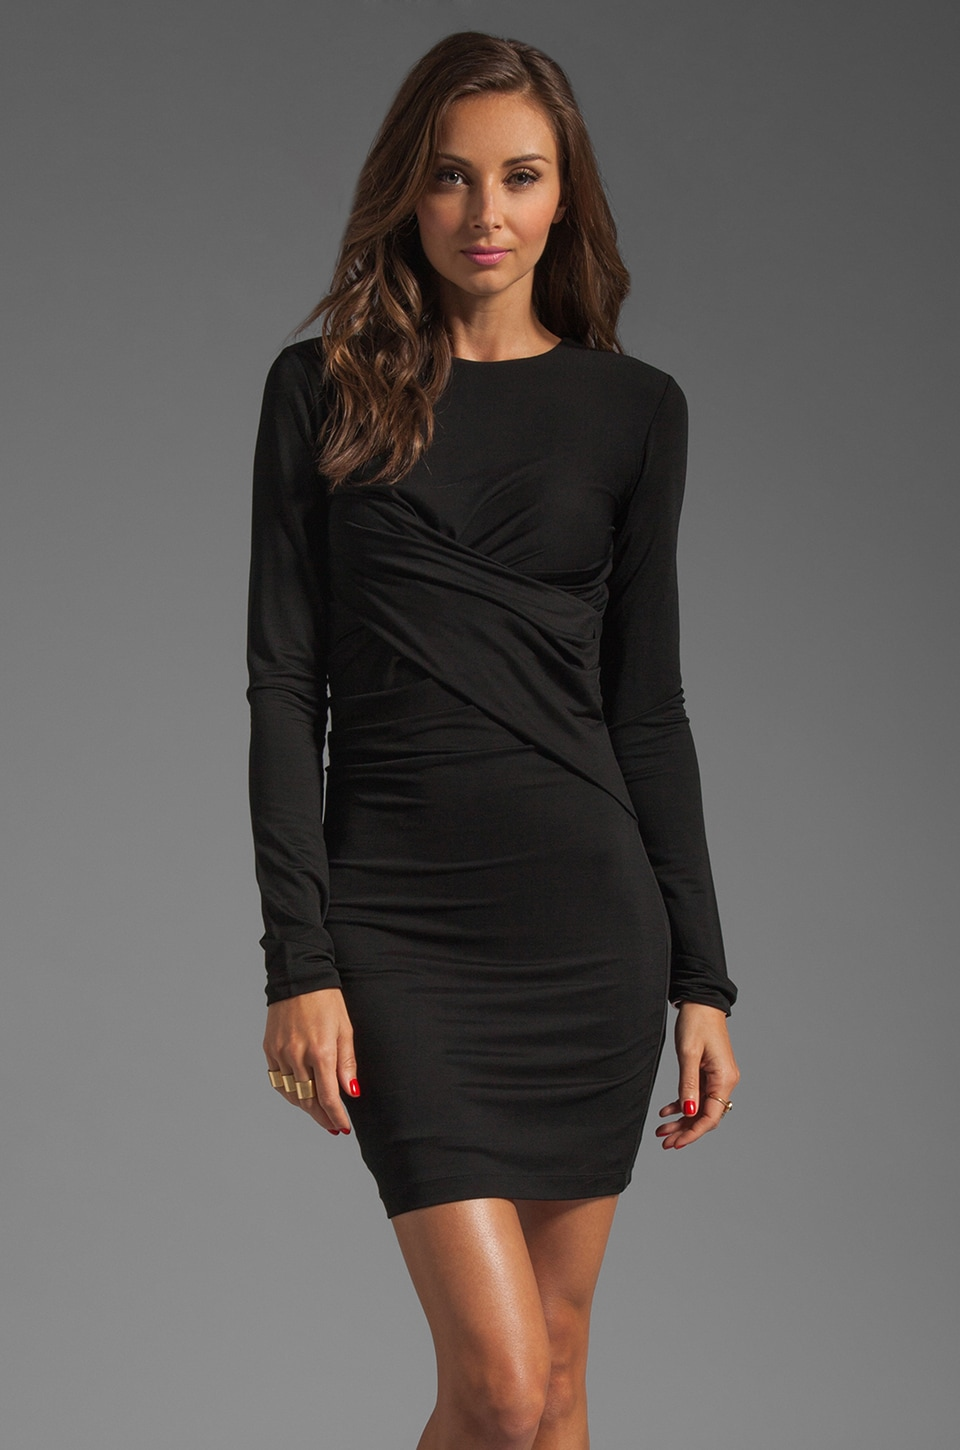 T by Alexander Wang Pique Mesh Long Sleeve Twist Dress in Black